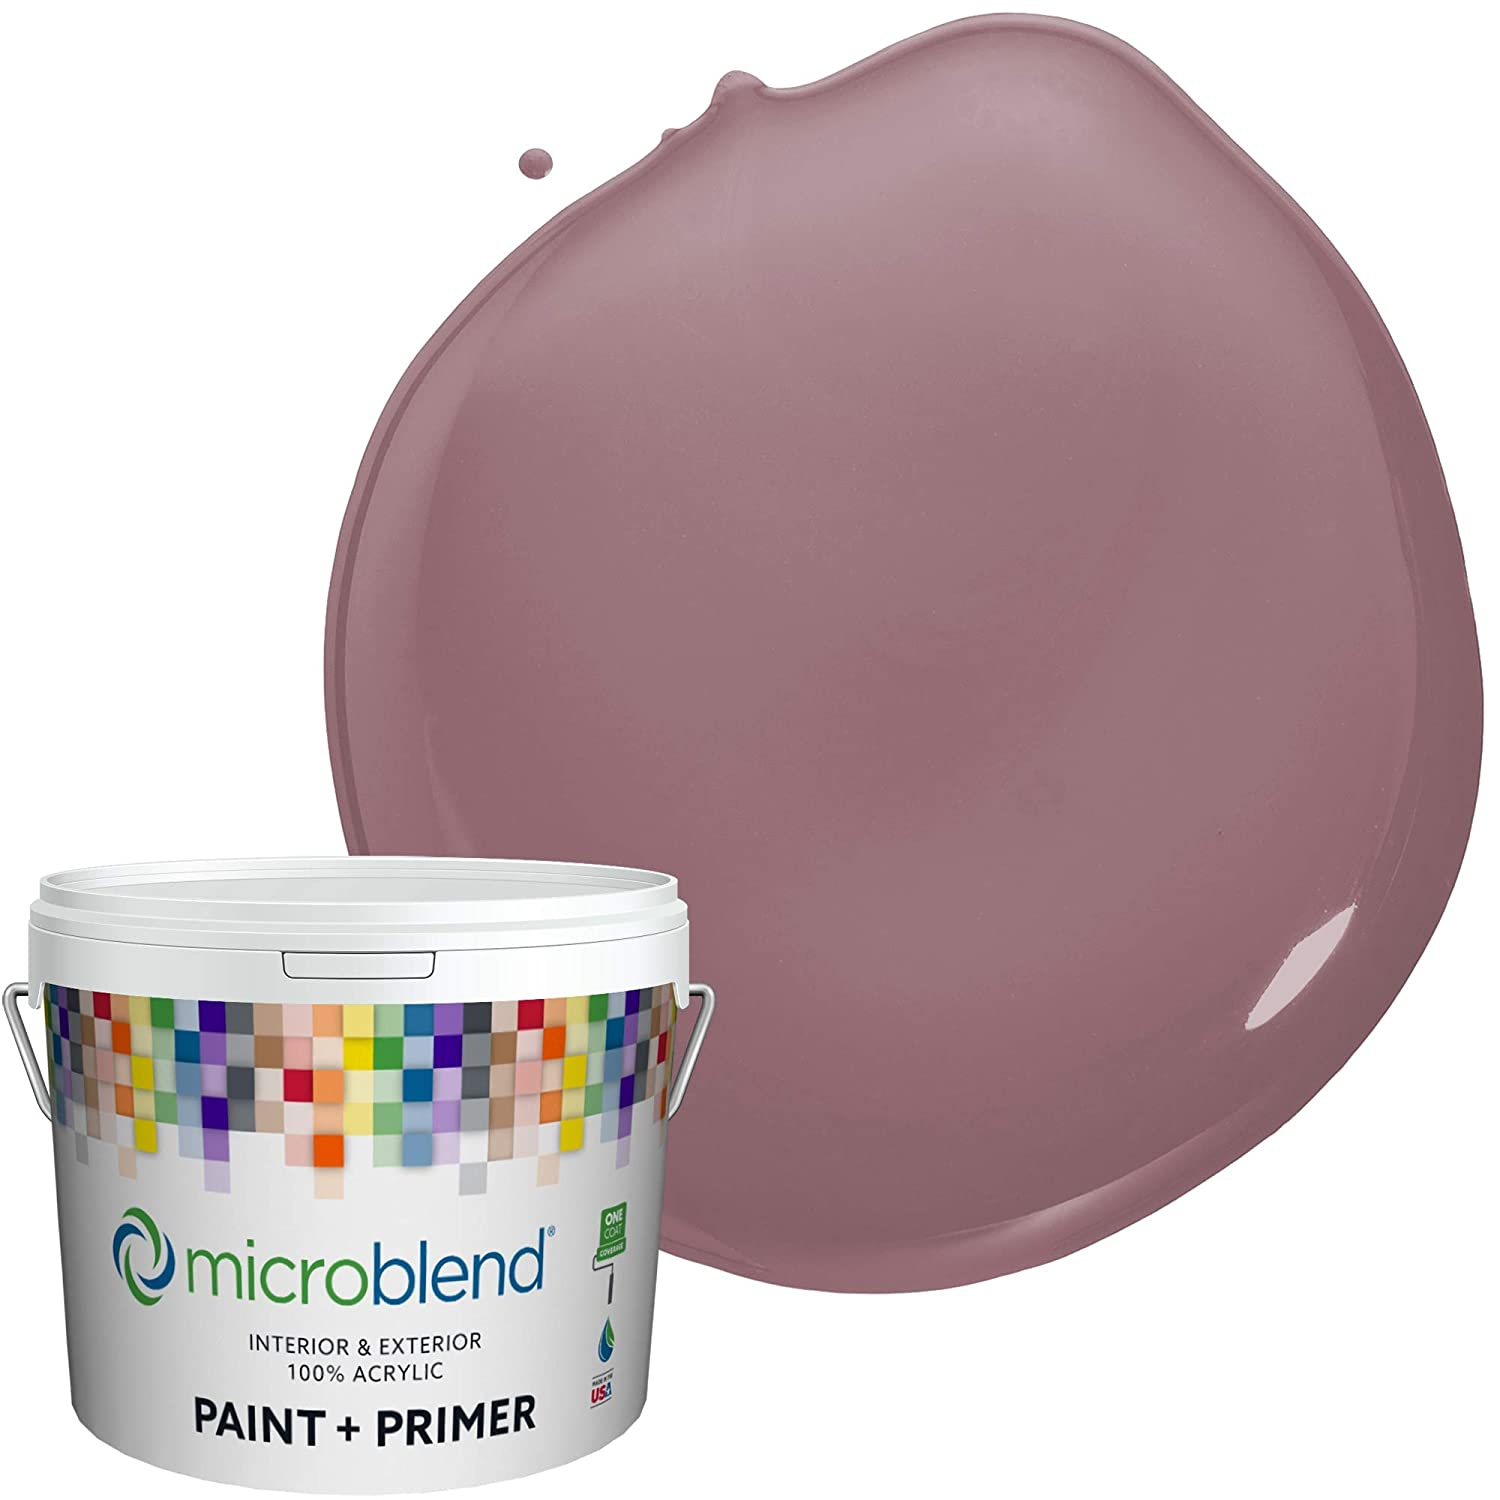 Microblend Exterior Paint and Primer - Purple/Merry Mauve, Semi-Gloss Sheen, 1-Gallon, Premium Quality, One Coat Hide, Low VOC, Washable, Microblend Violets Family